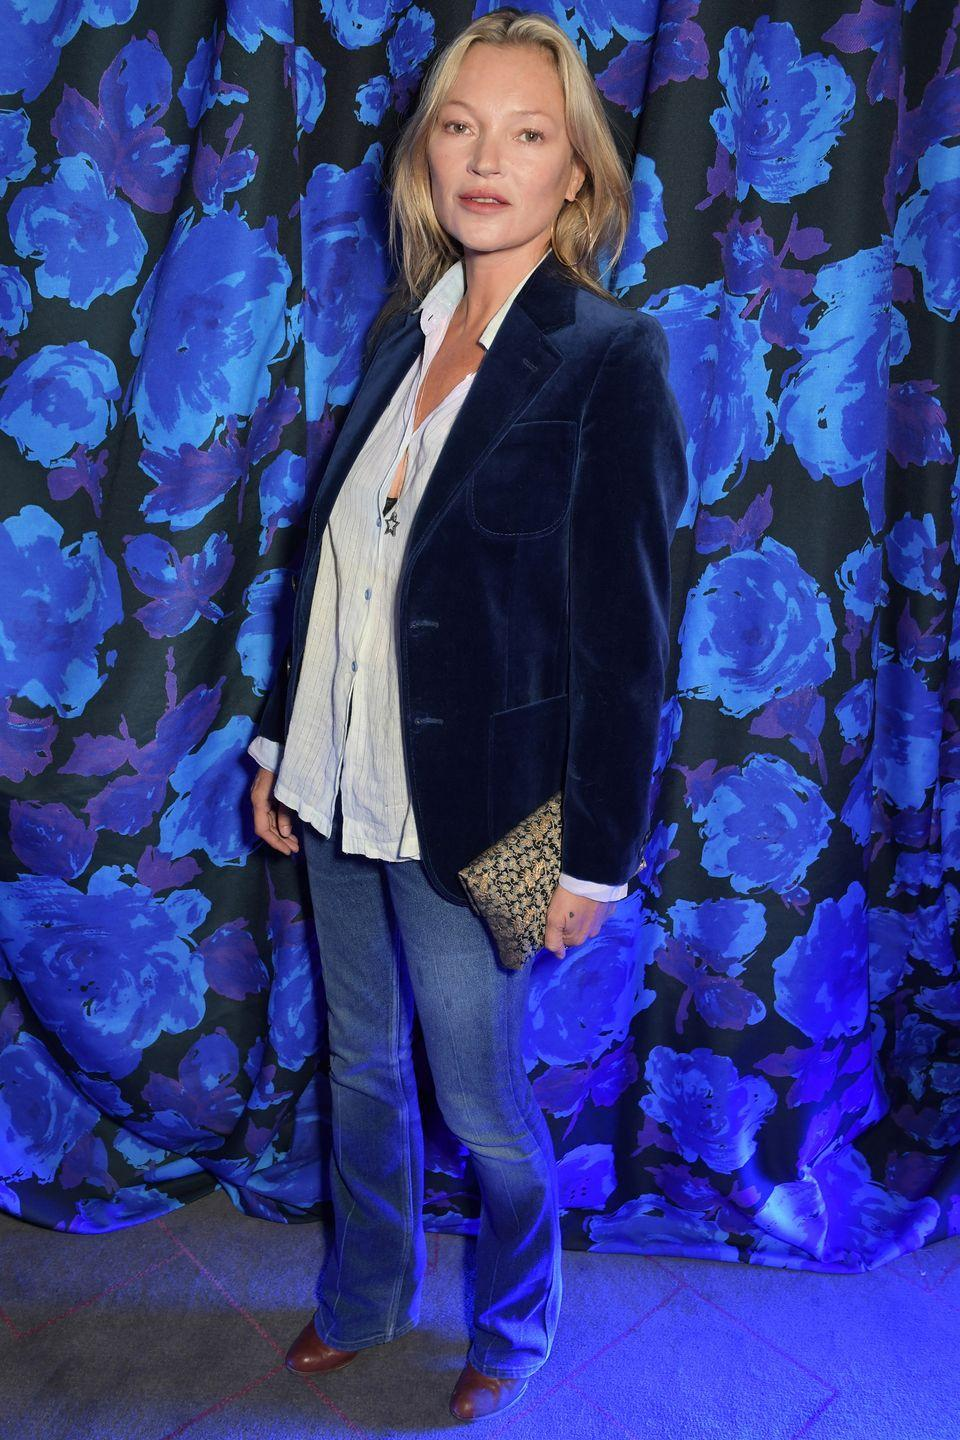 """<p><strong>21 September </strong></p><p>Kate Moss attended the show in a sleek velvet blazer and <a href=""""https://www.harpersbazaar.com/uk/fashion/fashion-news/a37686524/kate-moss-lila-richard-quinn/"""" rel=""""nofollow noopener"""" target=""""_blank"""" data-ylk=""""slk:watched her daughter Lila take to the catwalk"""" class=""""link rapid-noclick-resp"""">watched her daughter Lila take to the catwalk</a>. </p>"""